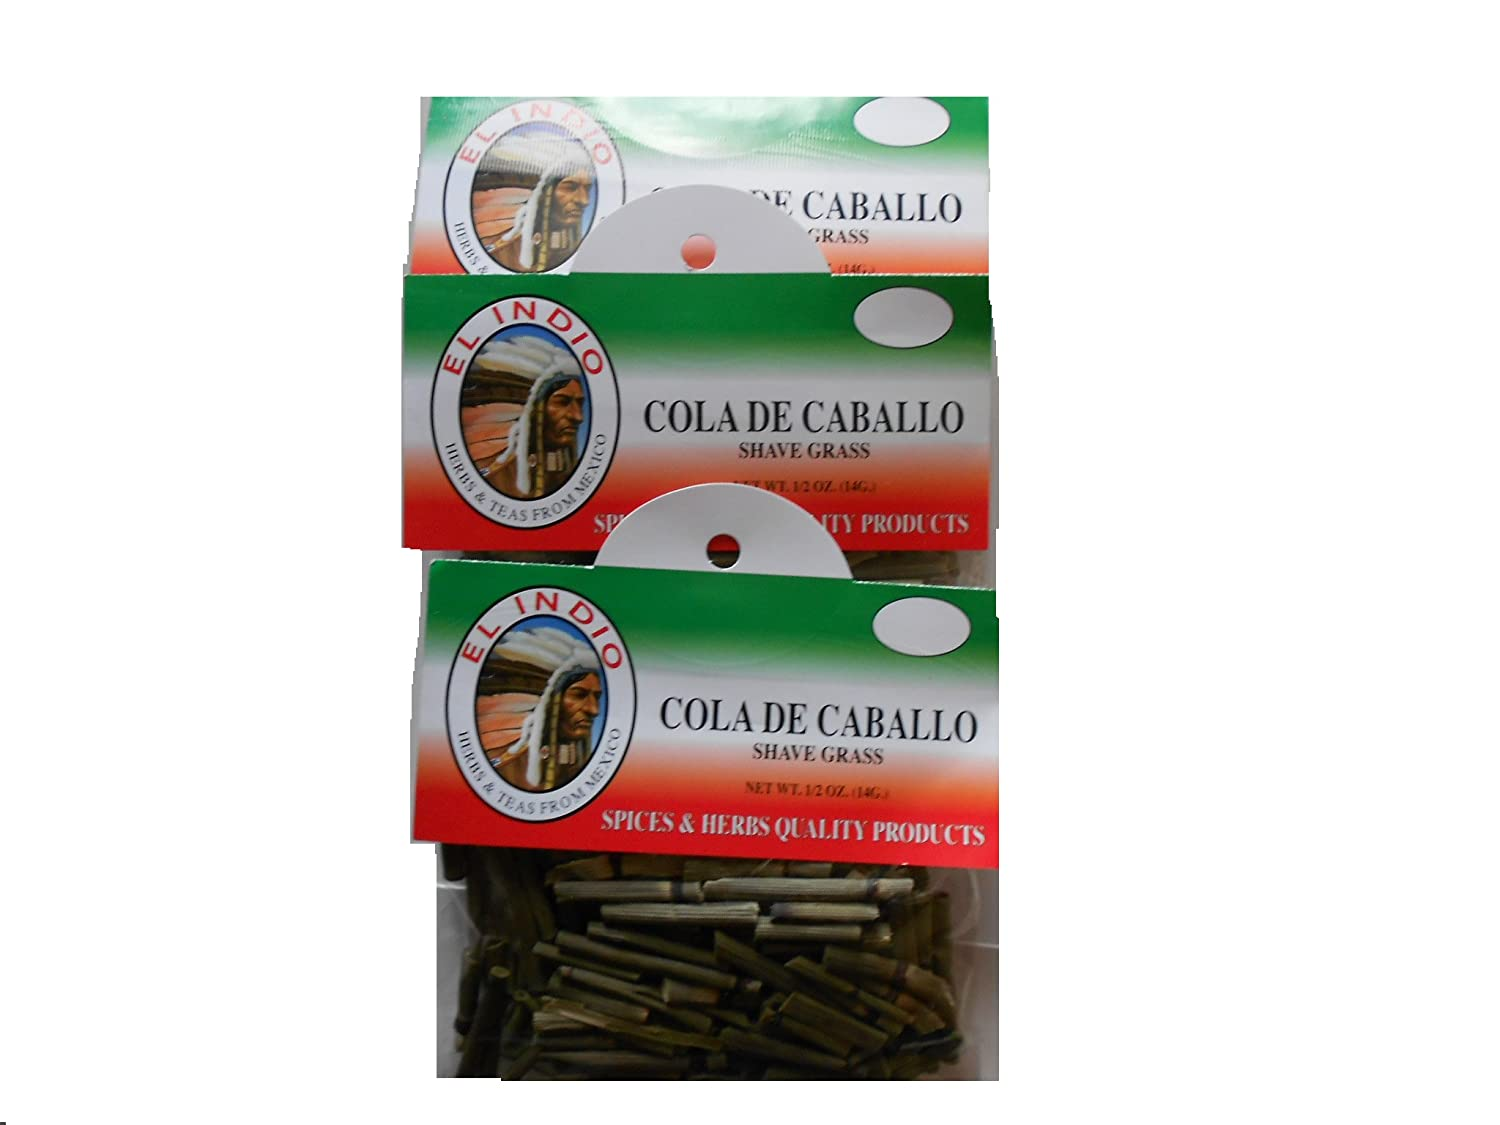 Amazon.com : Cola de Caballo / Shave Grass 1/2oz (14gr) : Grocery & Gourmet Food